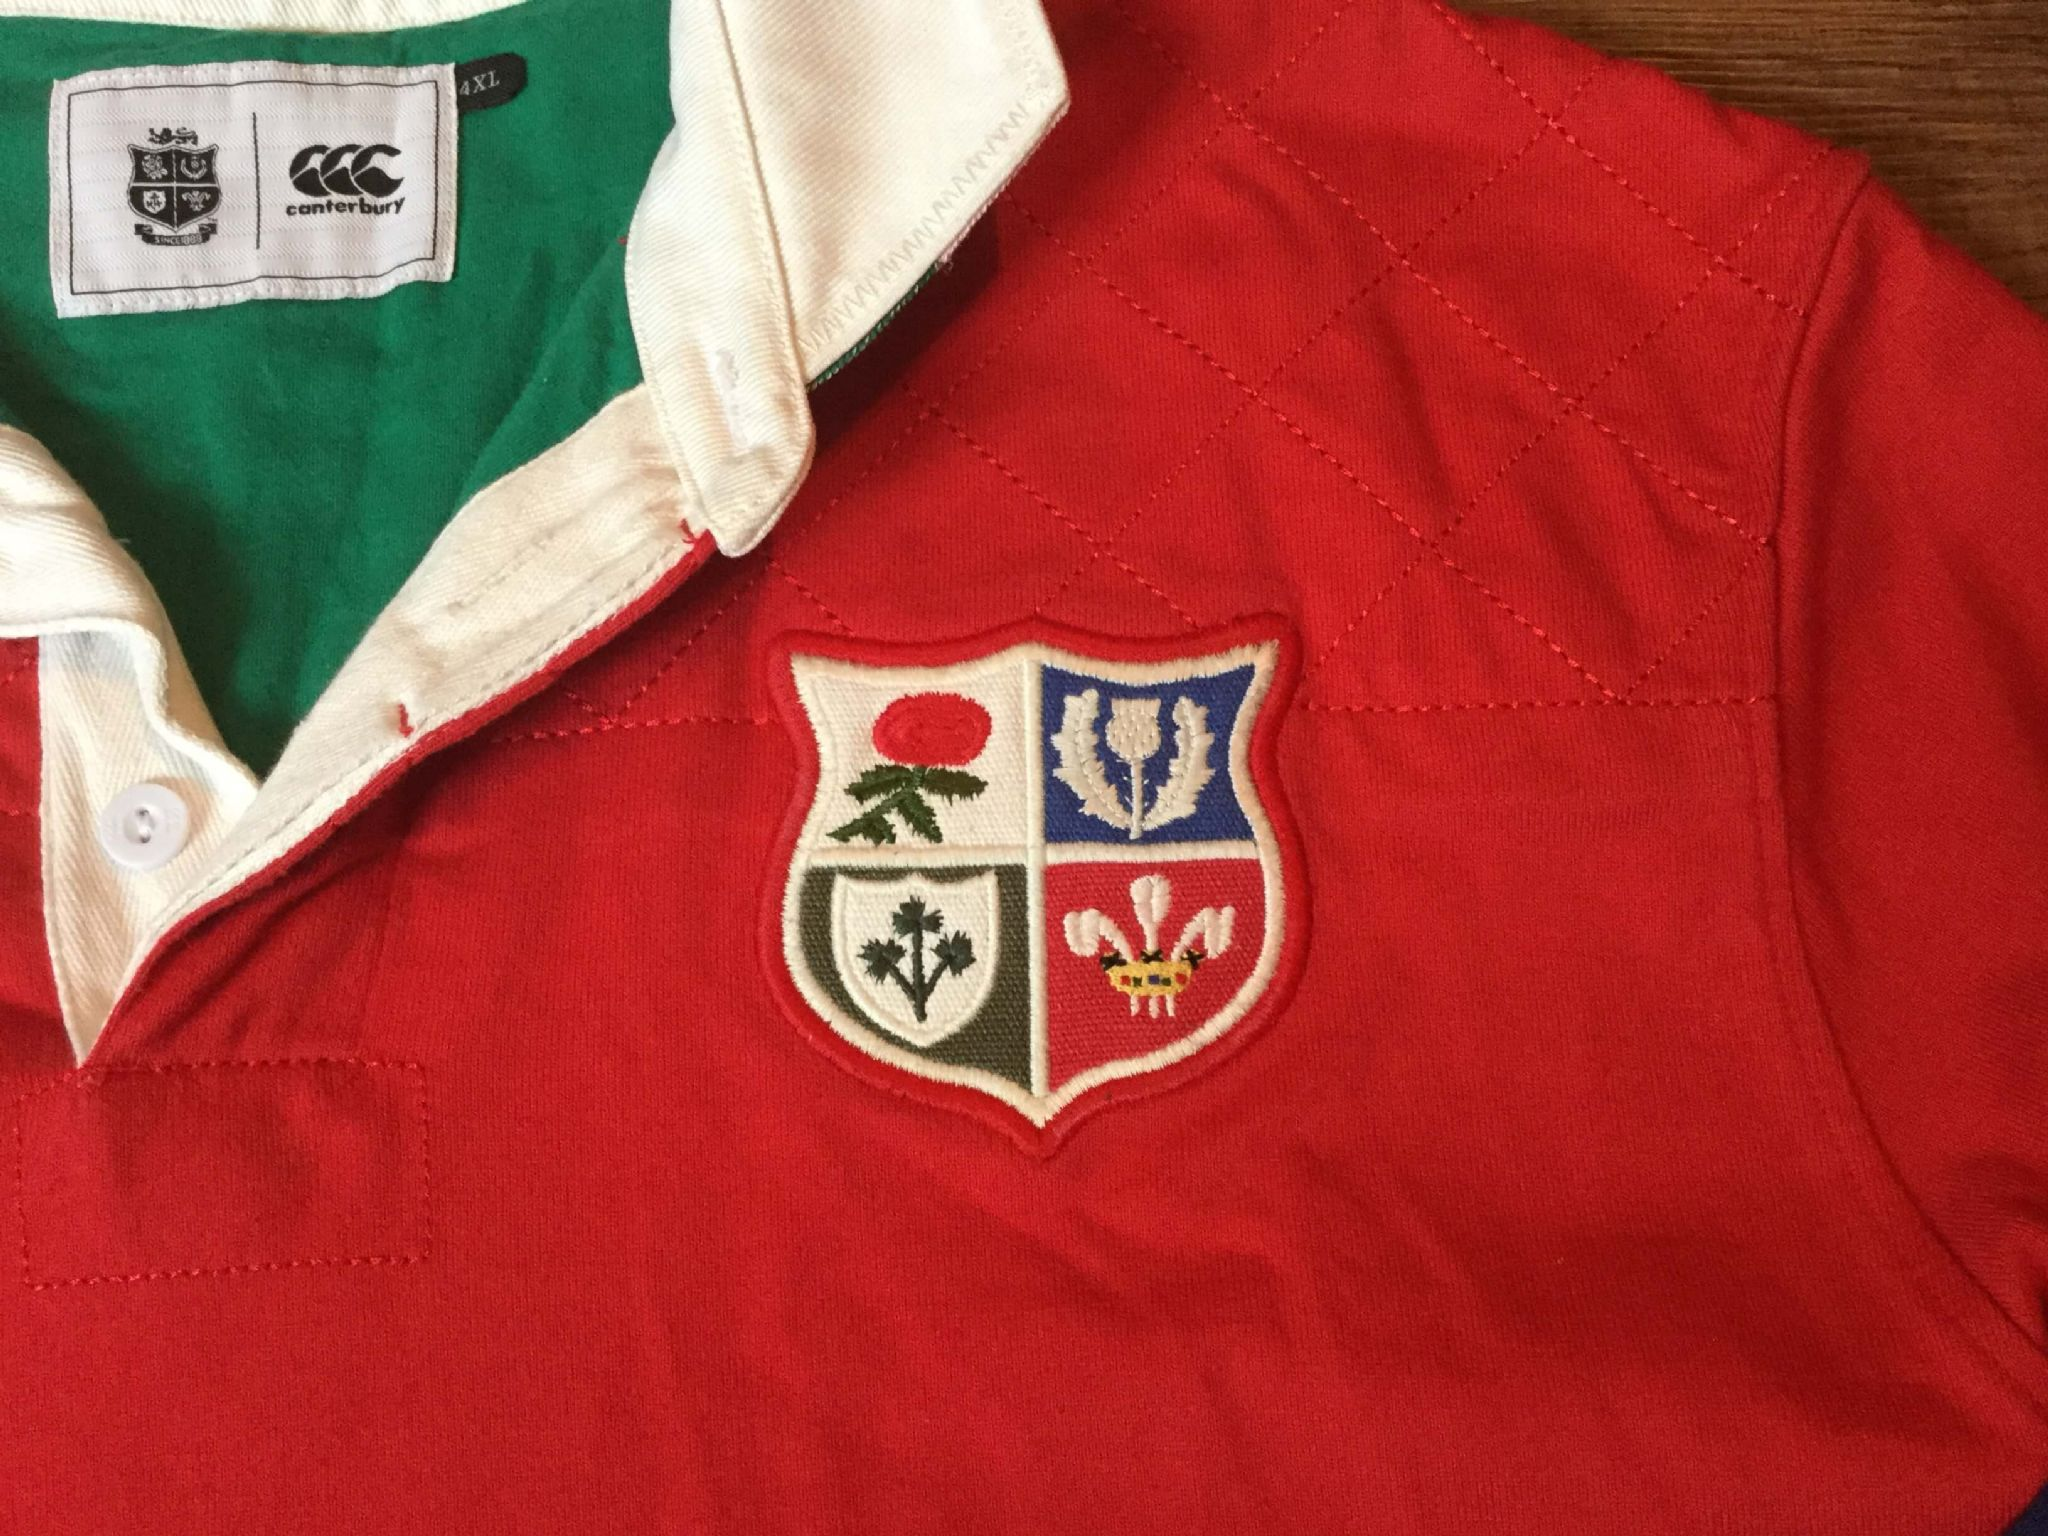 Classic Rugby Shirts 1888 British Lions Vintage Old Jerseys